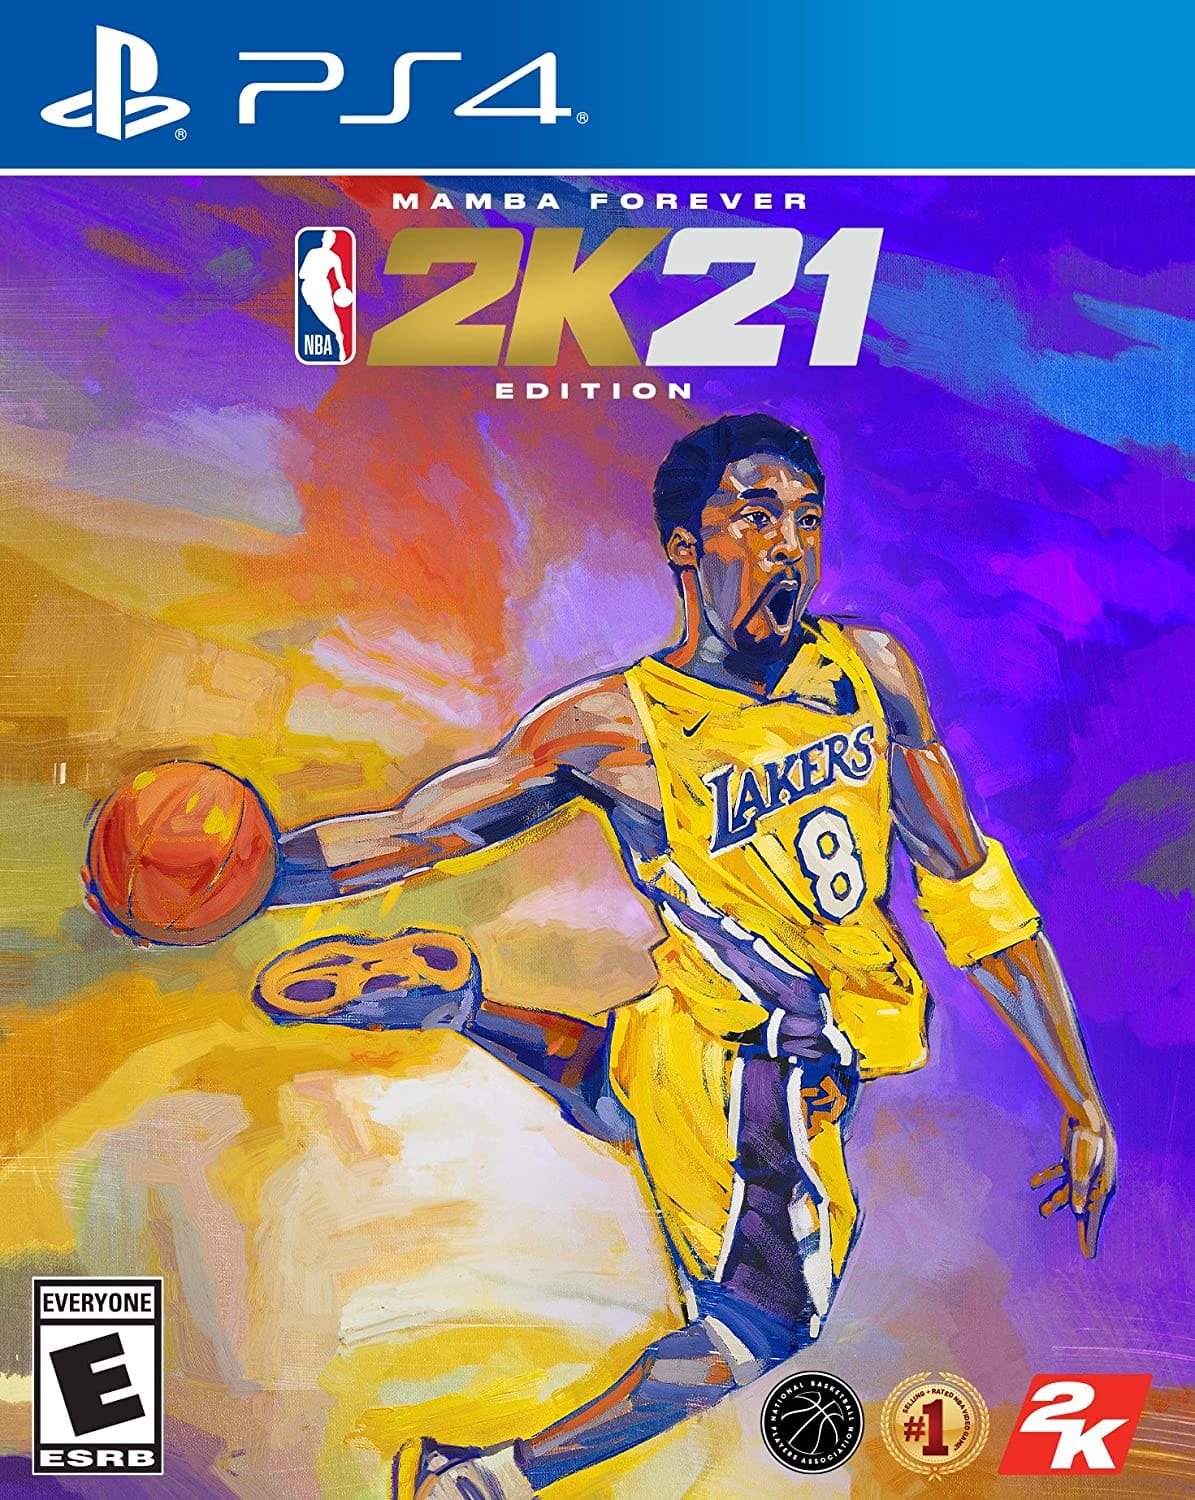 NBA 2K21 Mamba Forever Edition (PS4): $89.99